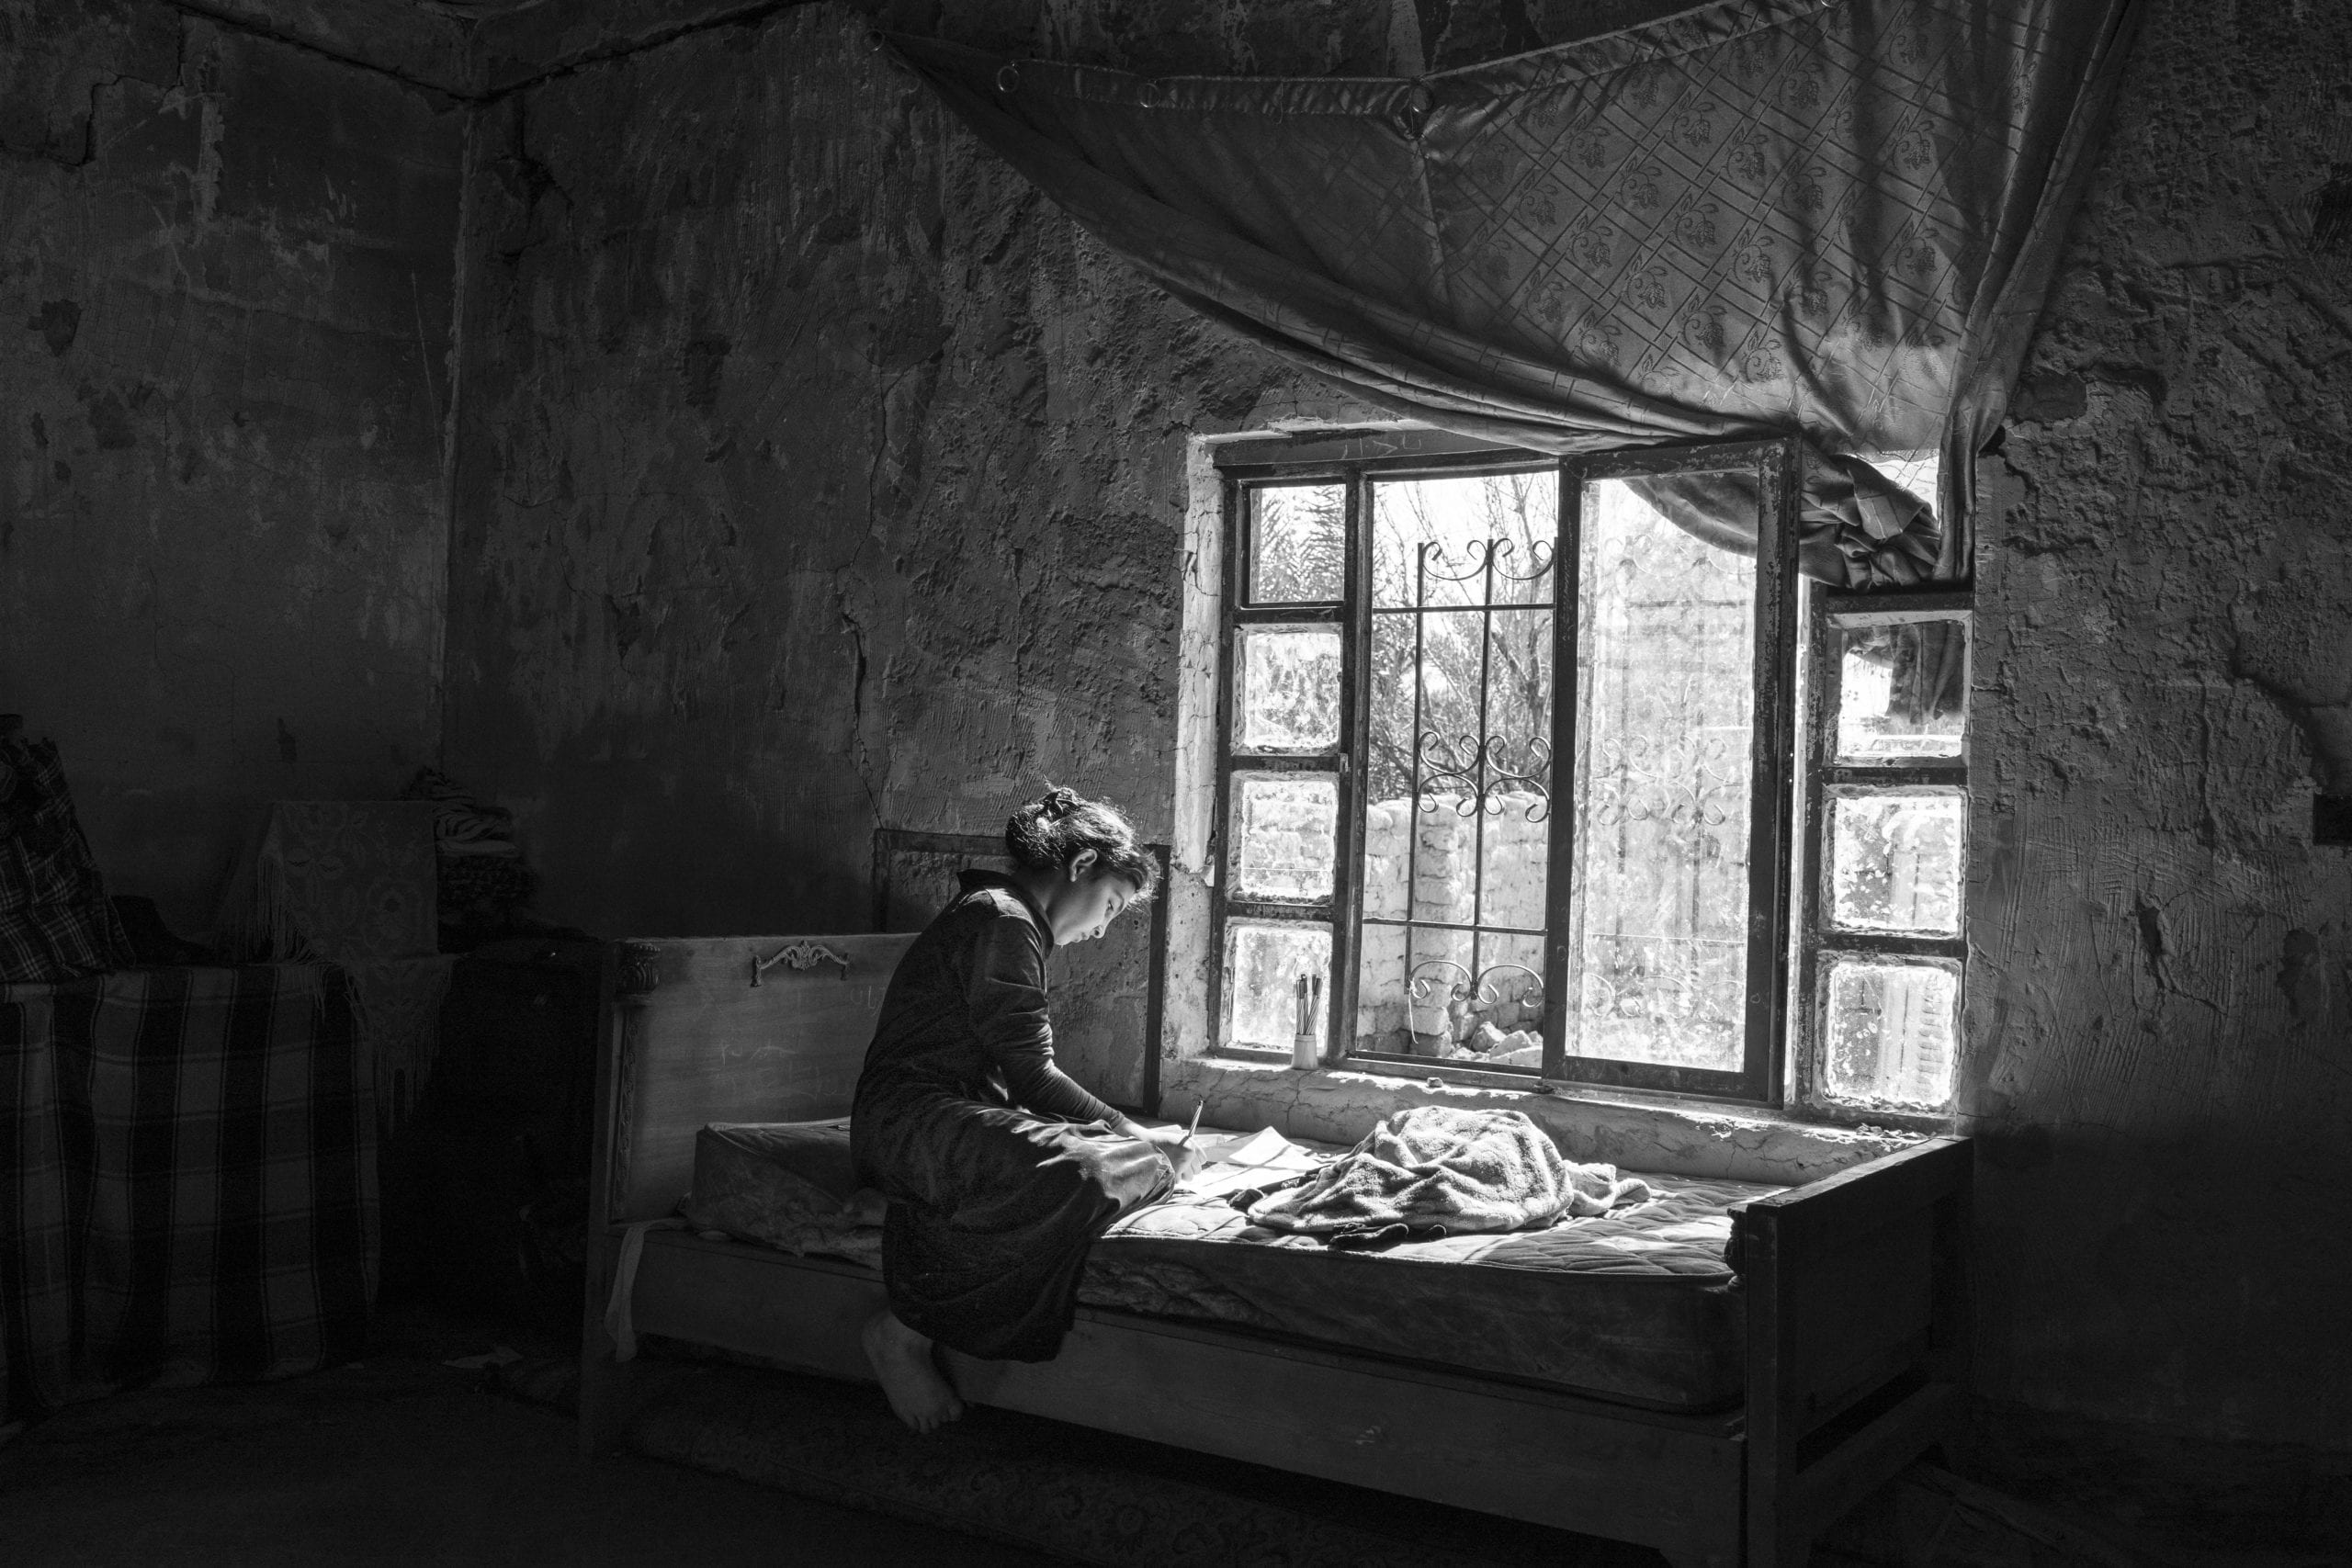 IRAQ. Albu Ajeel. February 2, 2016. 10-year-old Sara Adnan Mohamed, draws in a room in the partially burned down house that she shares with her family in the predominantly Sunni village of Albu Ajeel, on the outskirts of Tikrit. Albu Ajeel was under the control of the Islamic State until their retreat from Tikrit in the Spring of 2015..  Sara and her family recently returned to Albu Ajeel after being displaced to Kirkuk for almost two years. Upon their return, Sara's family found their village mostly destroyed and their home partially burned down.  In order to help Sara and other families cope, the International Committee of the Red Cross distributes food parcels to returnees and has also rehabilitated the water supply to Albu Ajeel residents.